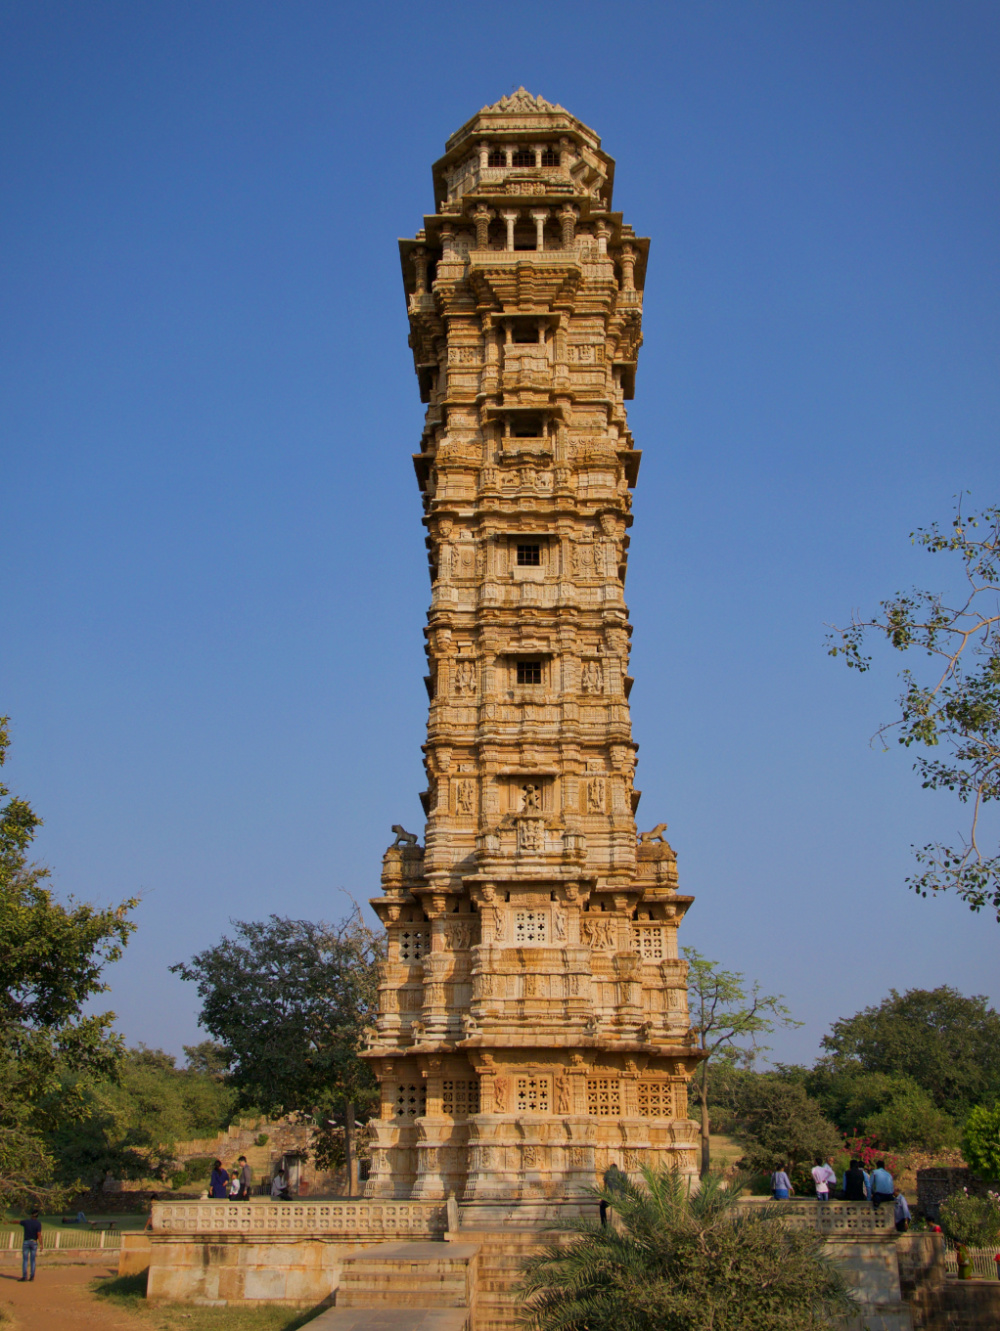 703-India-Chittorgarh